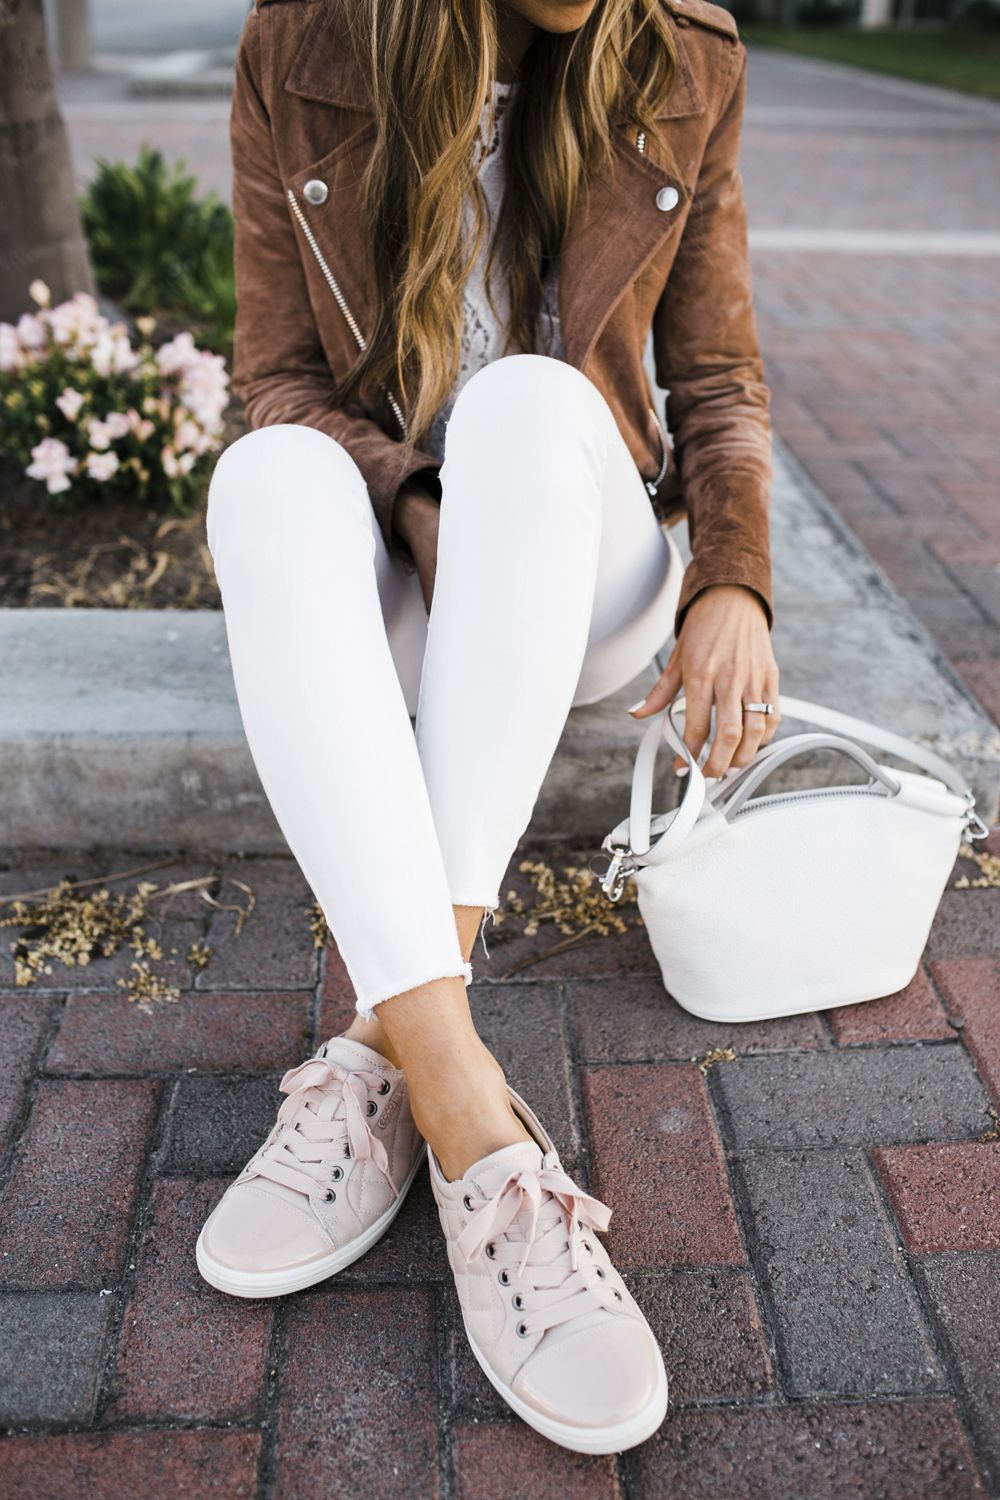 3a8de84fe32a0c Obsessed with these Blush Quilted Cap Toe Sneakers @EccoShoes @Zappos  #ECCOSHOES, #Sponsored #ZapposStyle